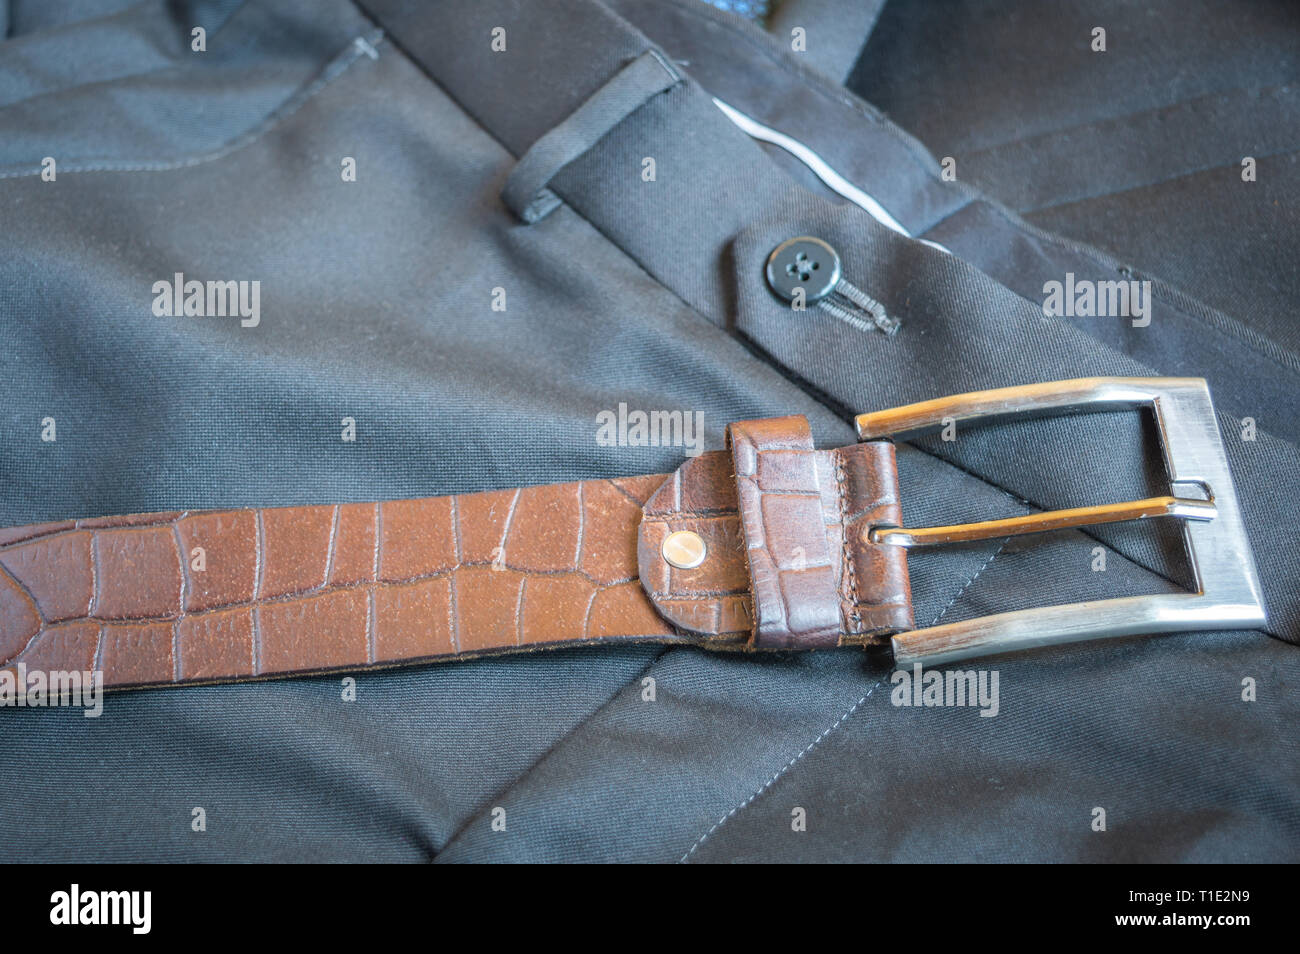 A brown textured leather belt kept on a formal pant trouser - Stock Image